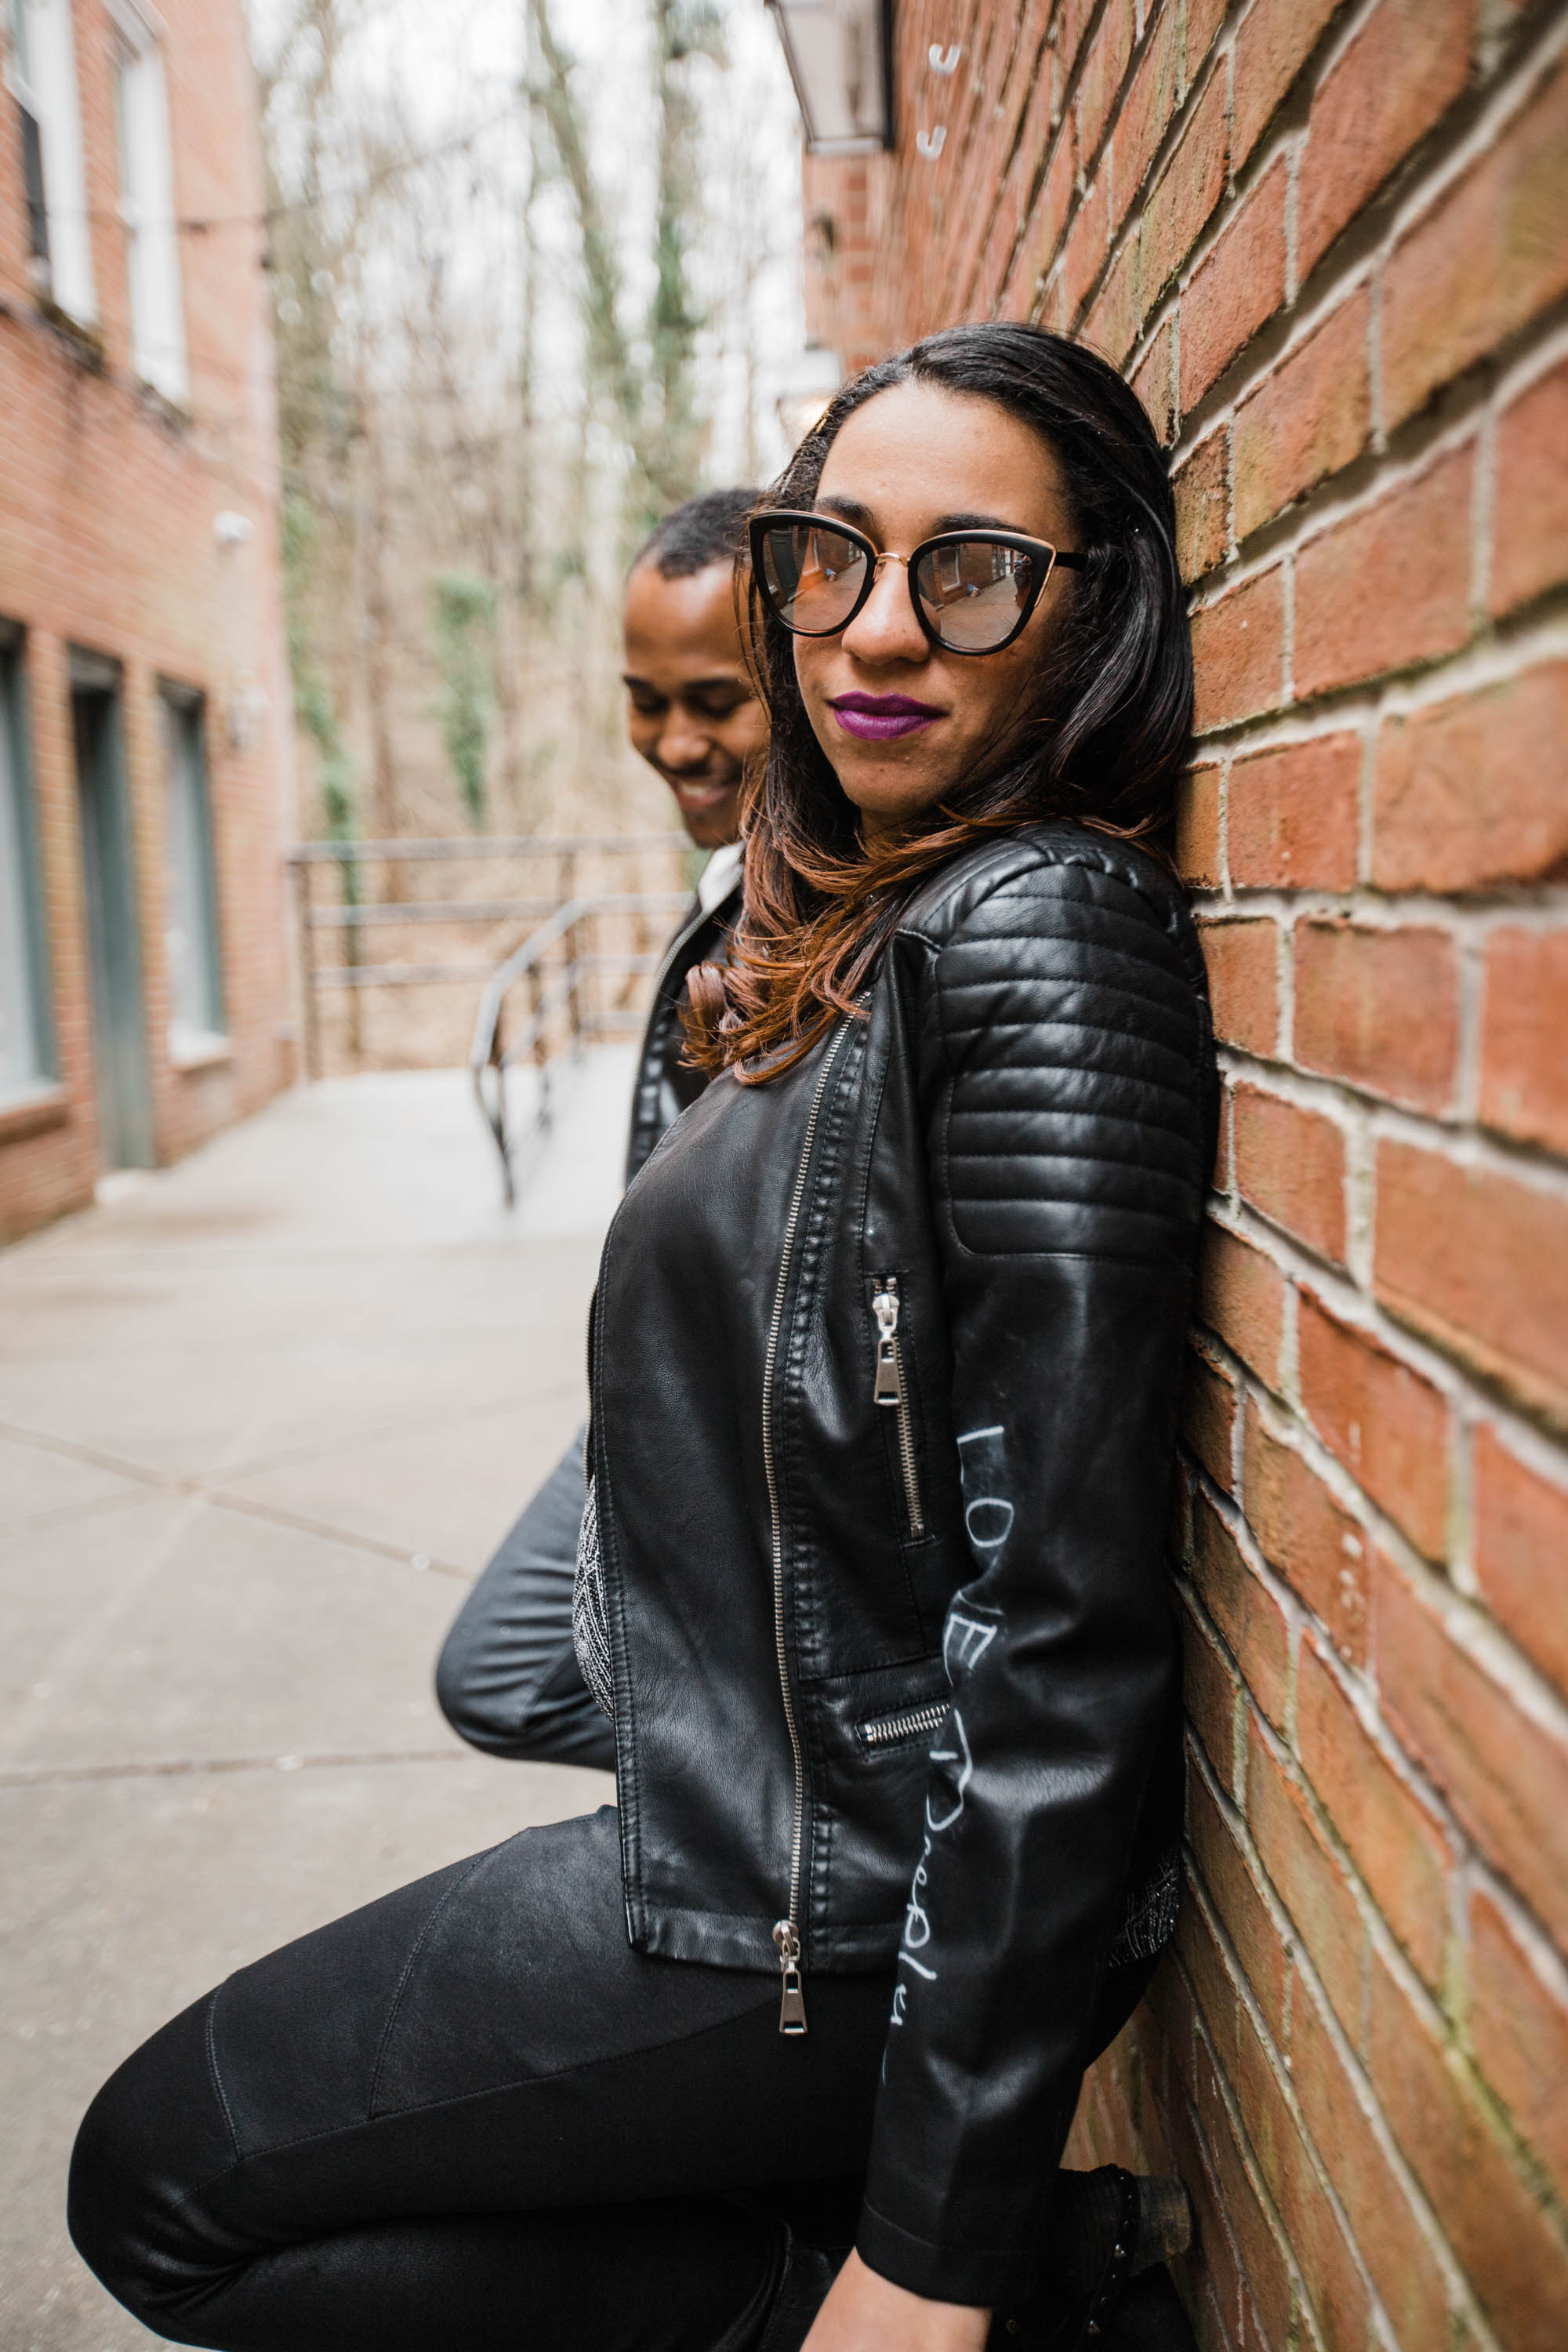 Hand lettered Black Leather jacket Pregnancy Announcement Baltimore Maternity Photographer Megapixels Media Photography-19.jpg